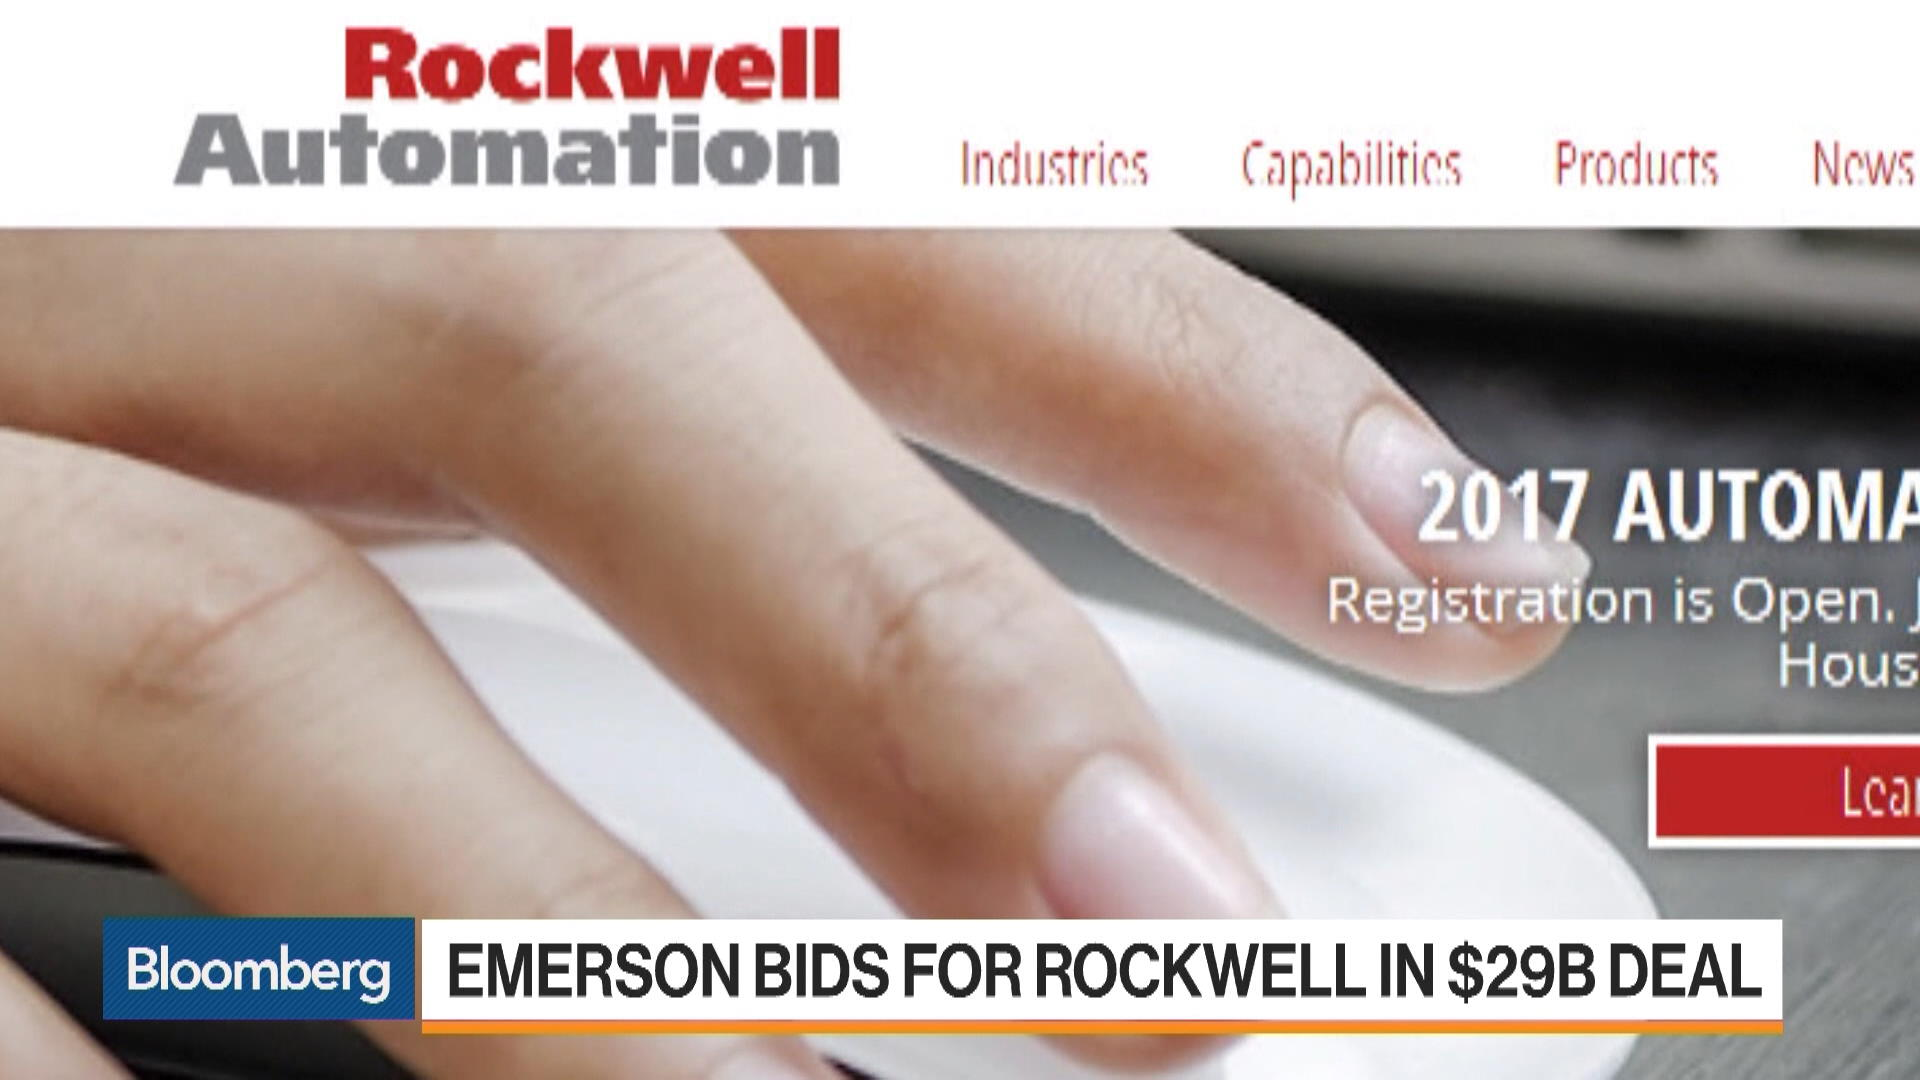 ROK:New York Stock Quote - Rockwell Automation Inc - Bloomberg Markets